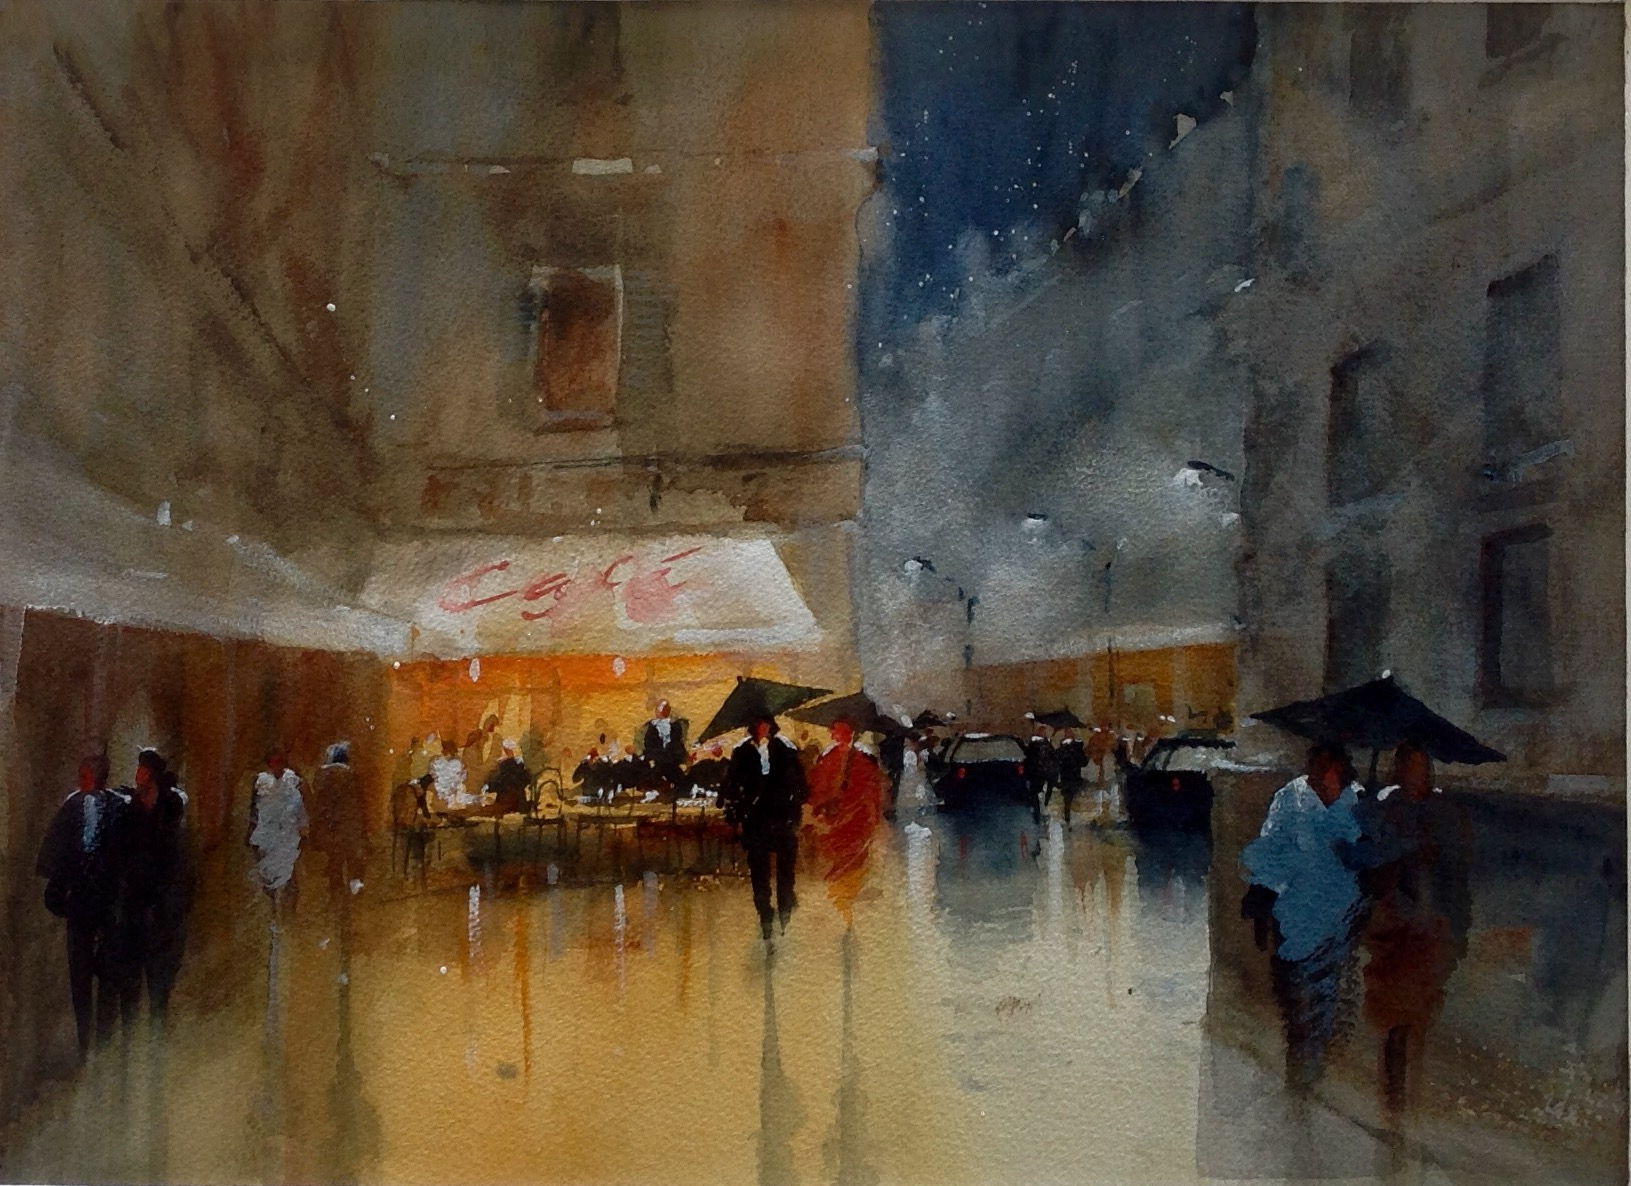 David Norman Late Drinks on a Wet Evening